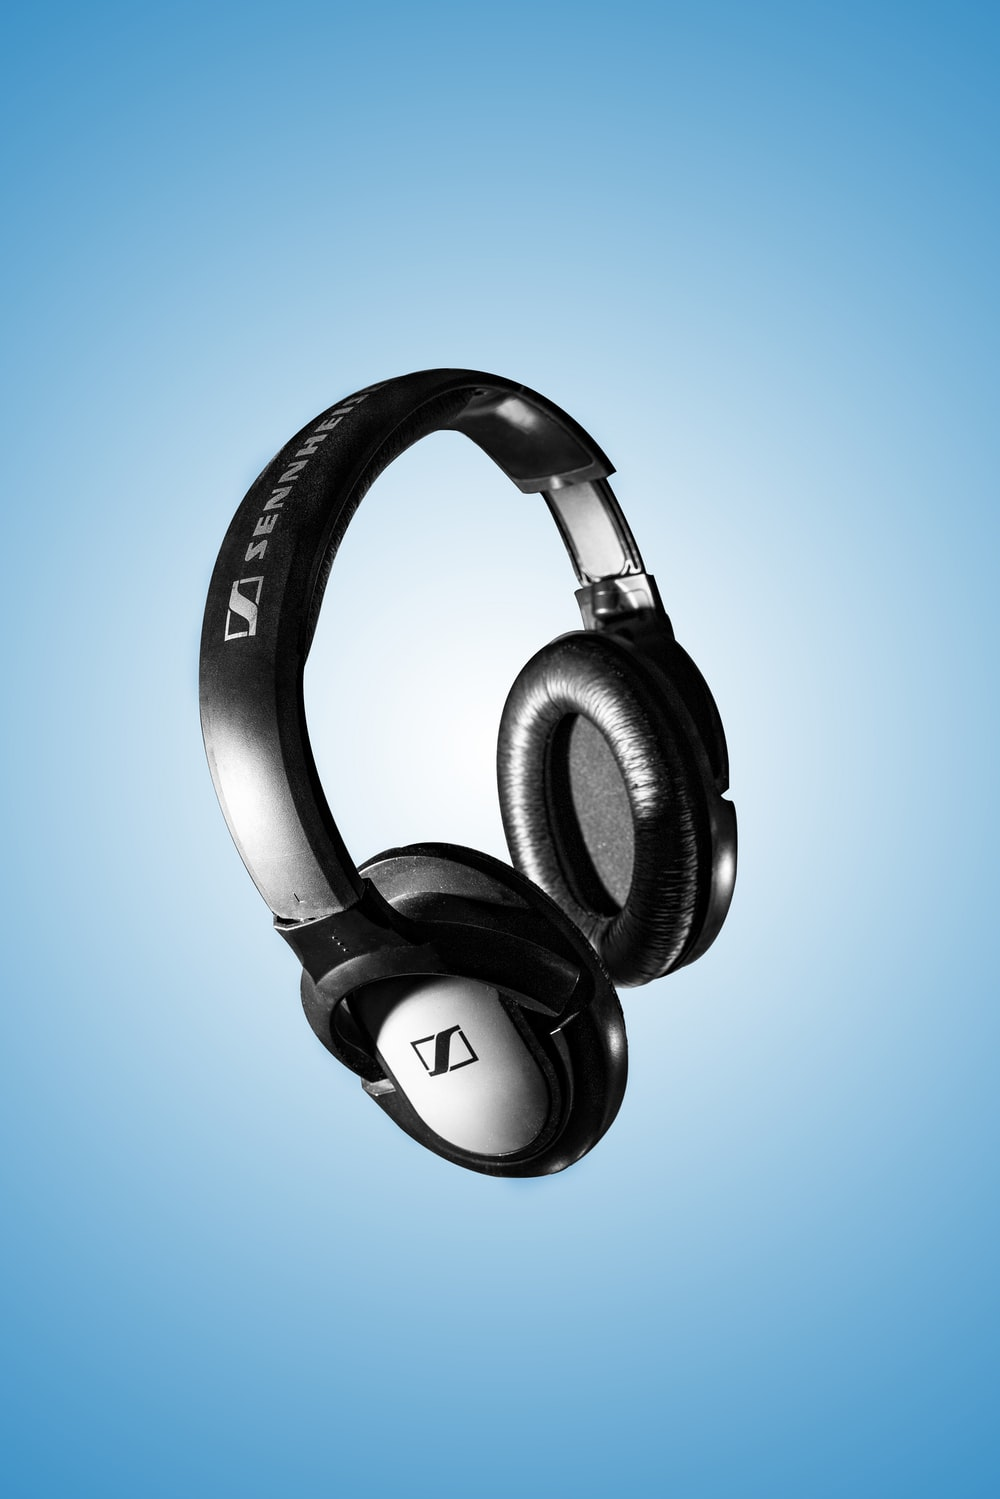 black and gray beats by dr dre wireless headphones